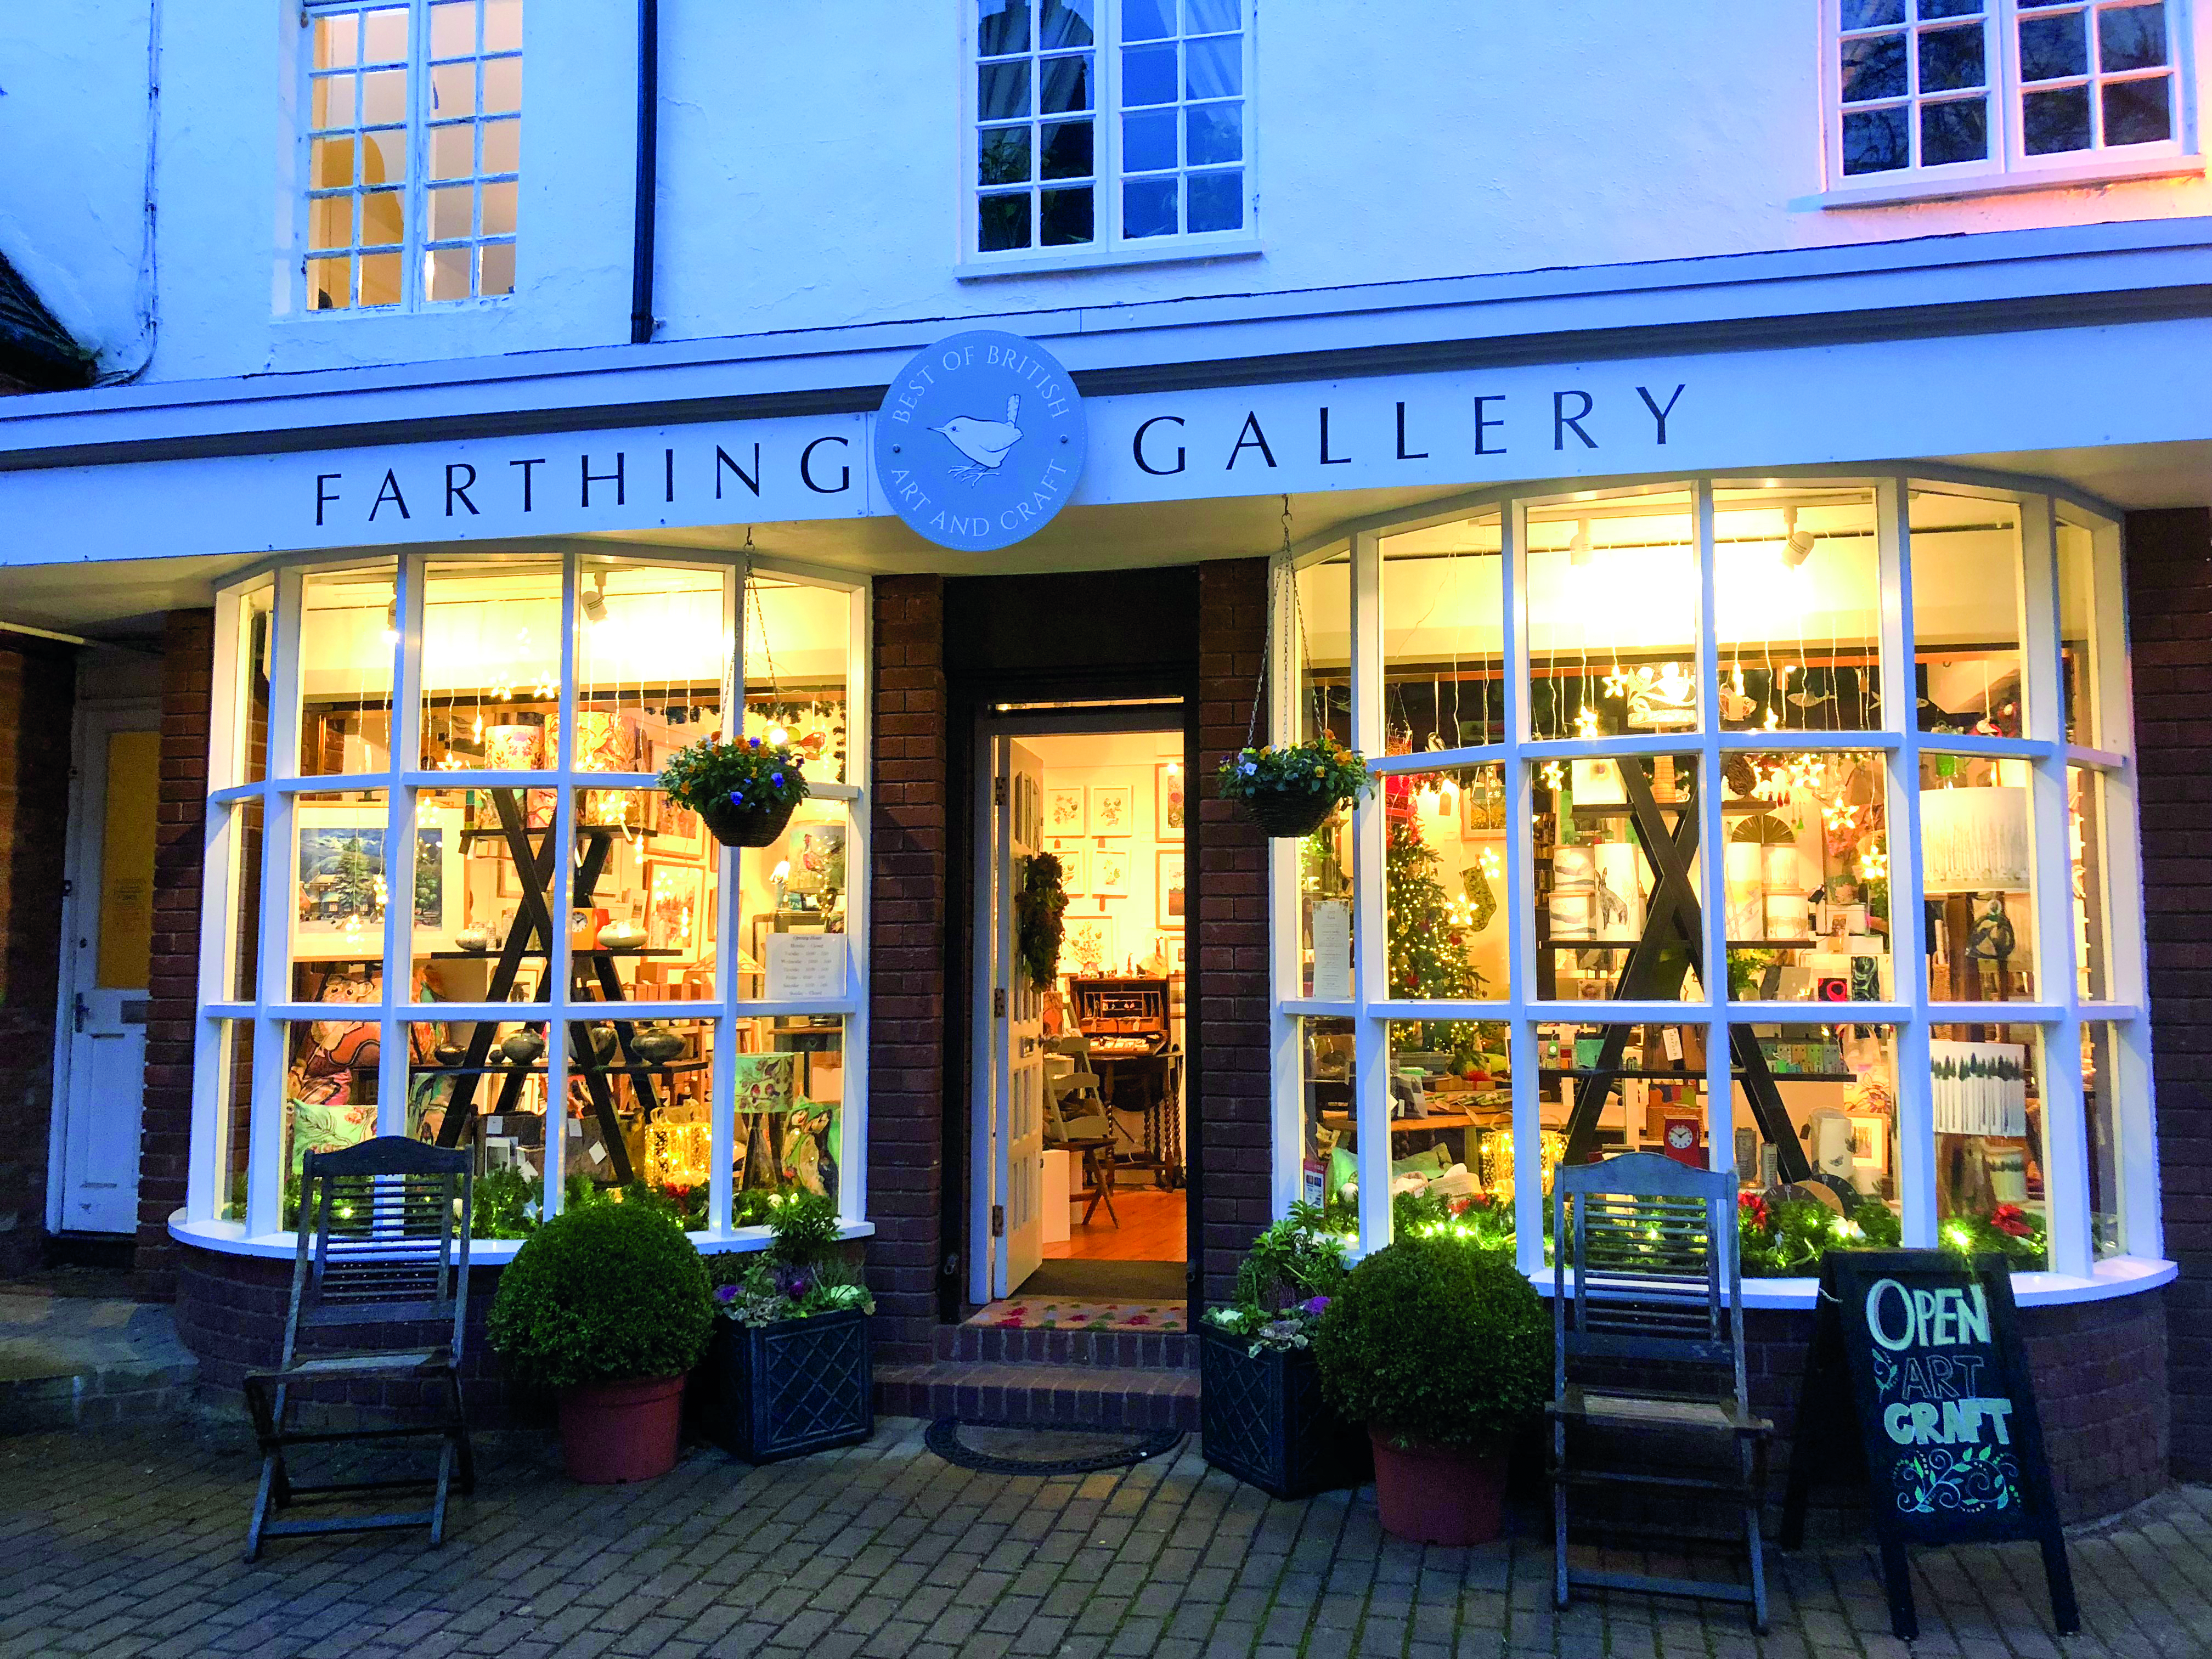 Farthing Gallery